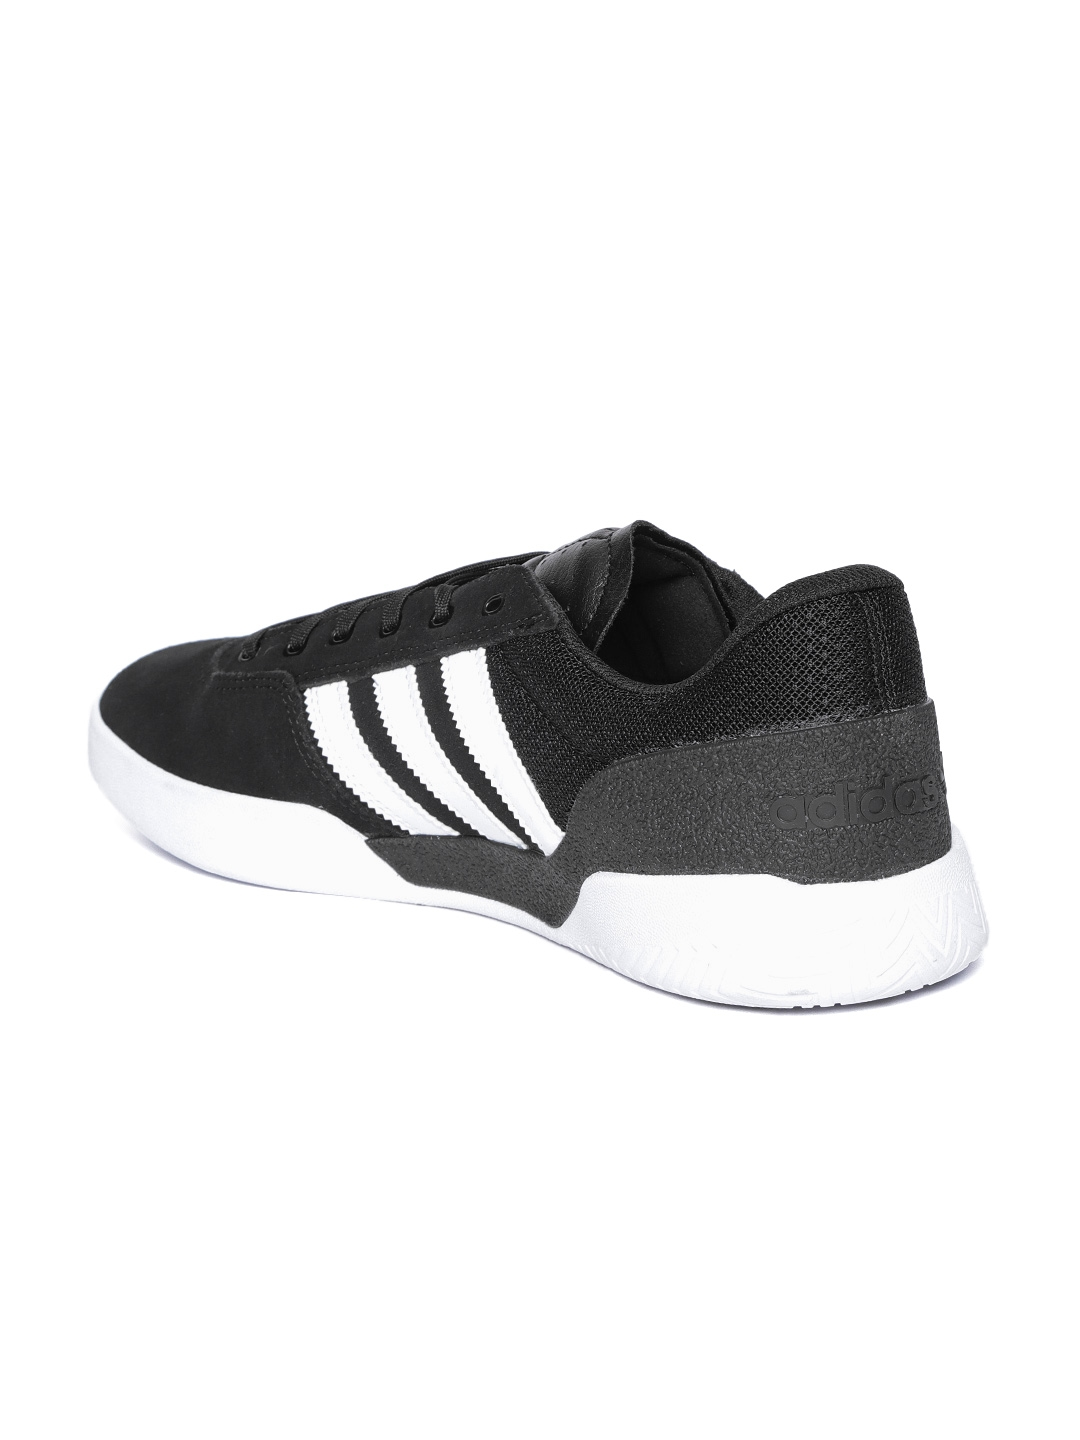 new styles eb06f 6e397 ADIDAS Originals Men Black City Cup Suede Skateboarding Shoes